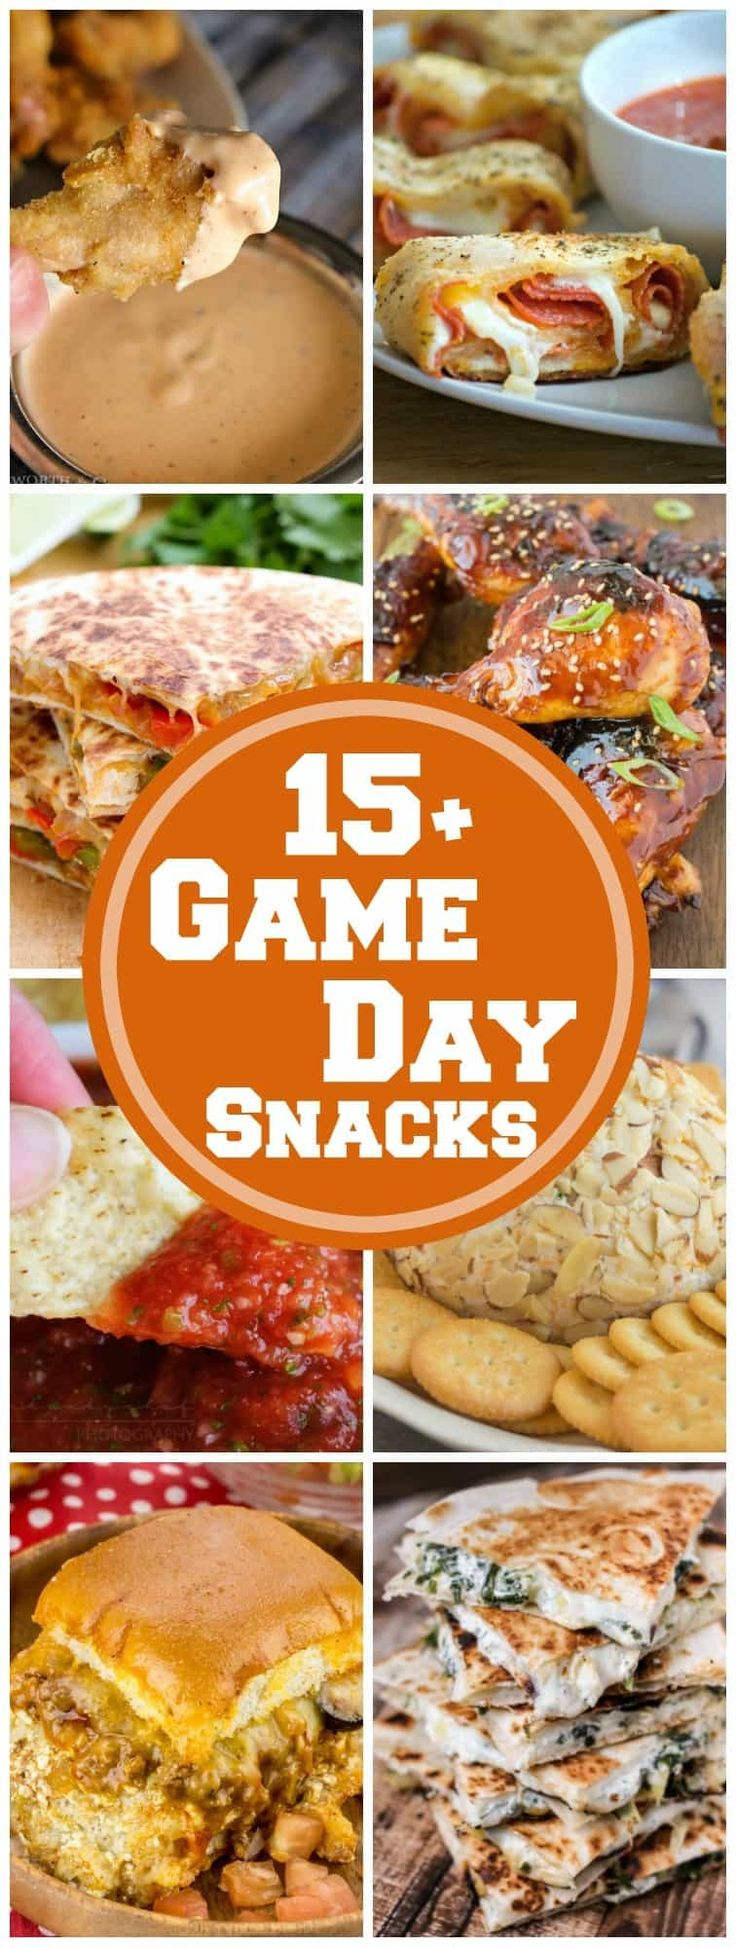 15+ Game Day Snacks | The BEST Game Day Snacks for all your entertaining needs! #football #tailgate #entertaining